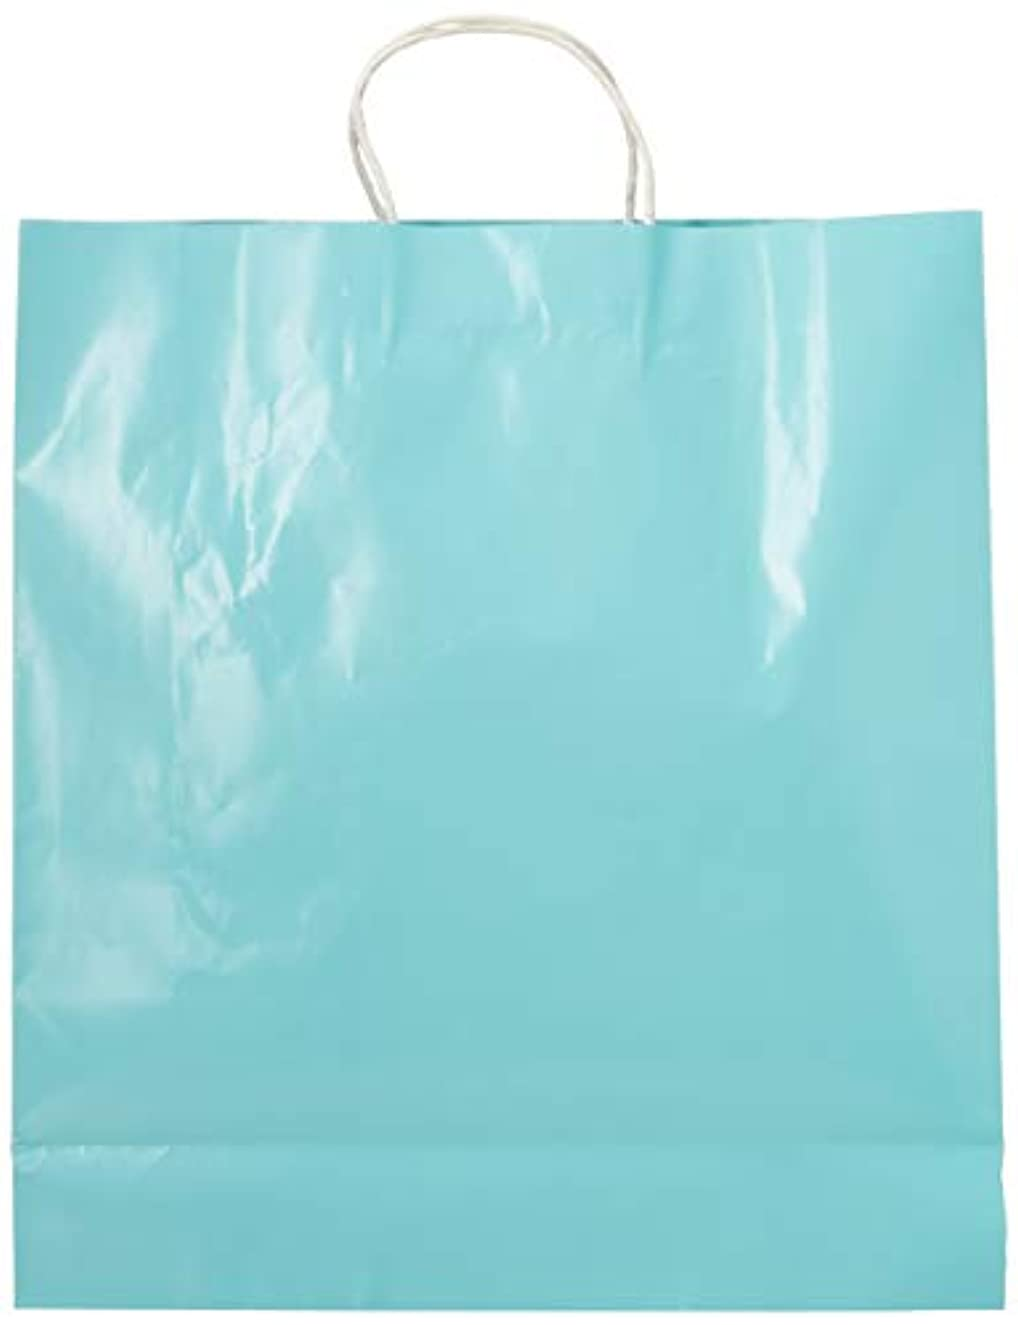 Cindus Clay Coated Gift Bag, 13 by 15-3/4 by 6-Inch, Baby Blue-12 per package